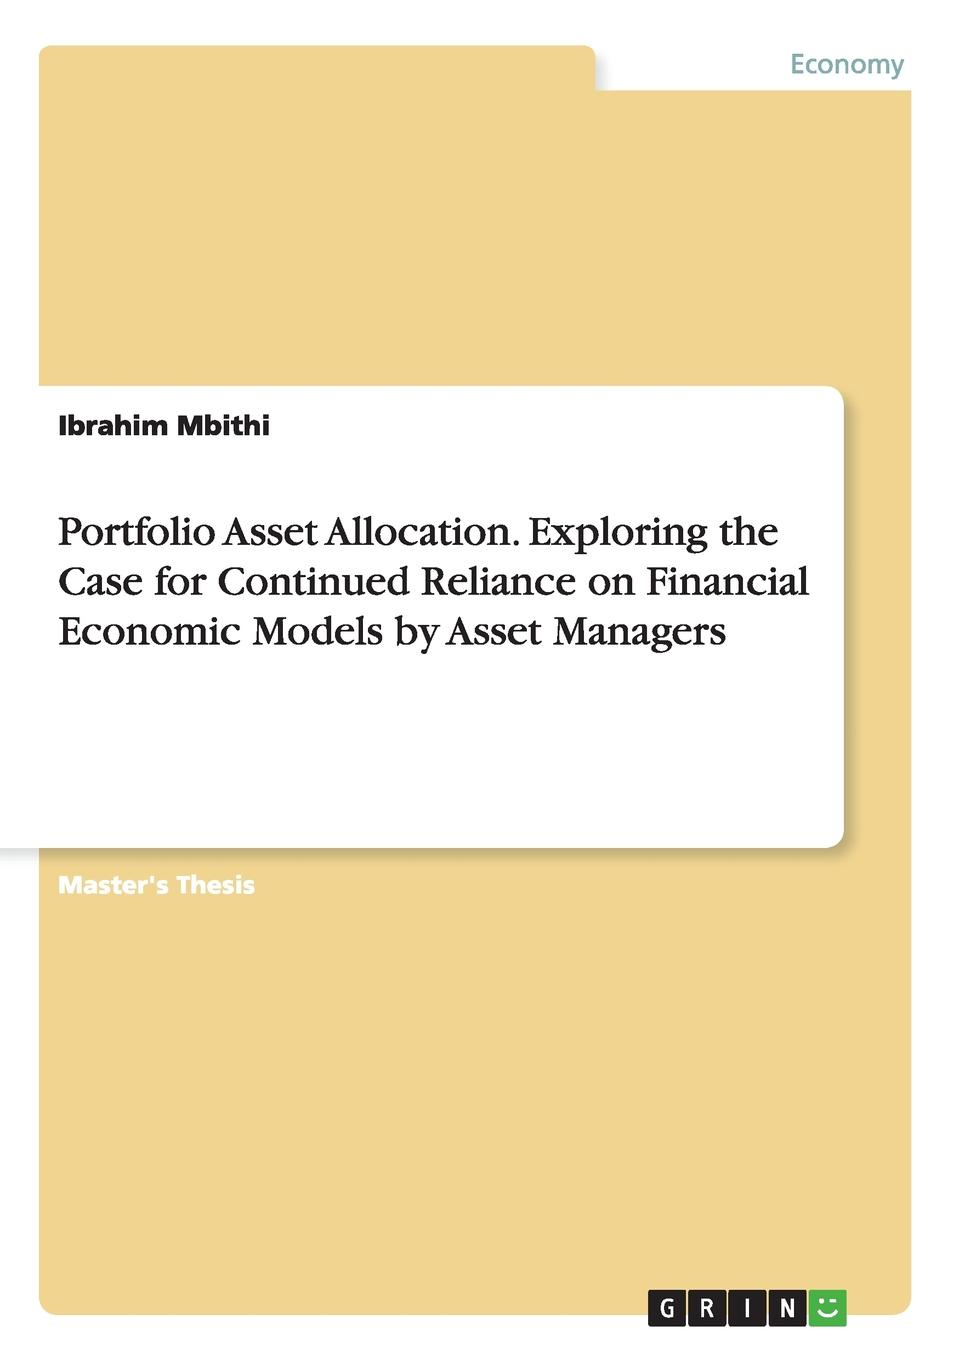 Ibrahim Mbithi Portfolio Asset Allocation. Exploring the Case for Continued Reliance on Financial Economic Models by Asset Managers charles tapiero s risk finance and asset pricing value measurements and markets